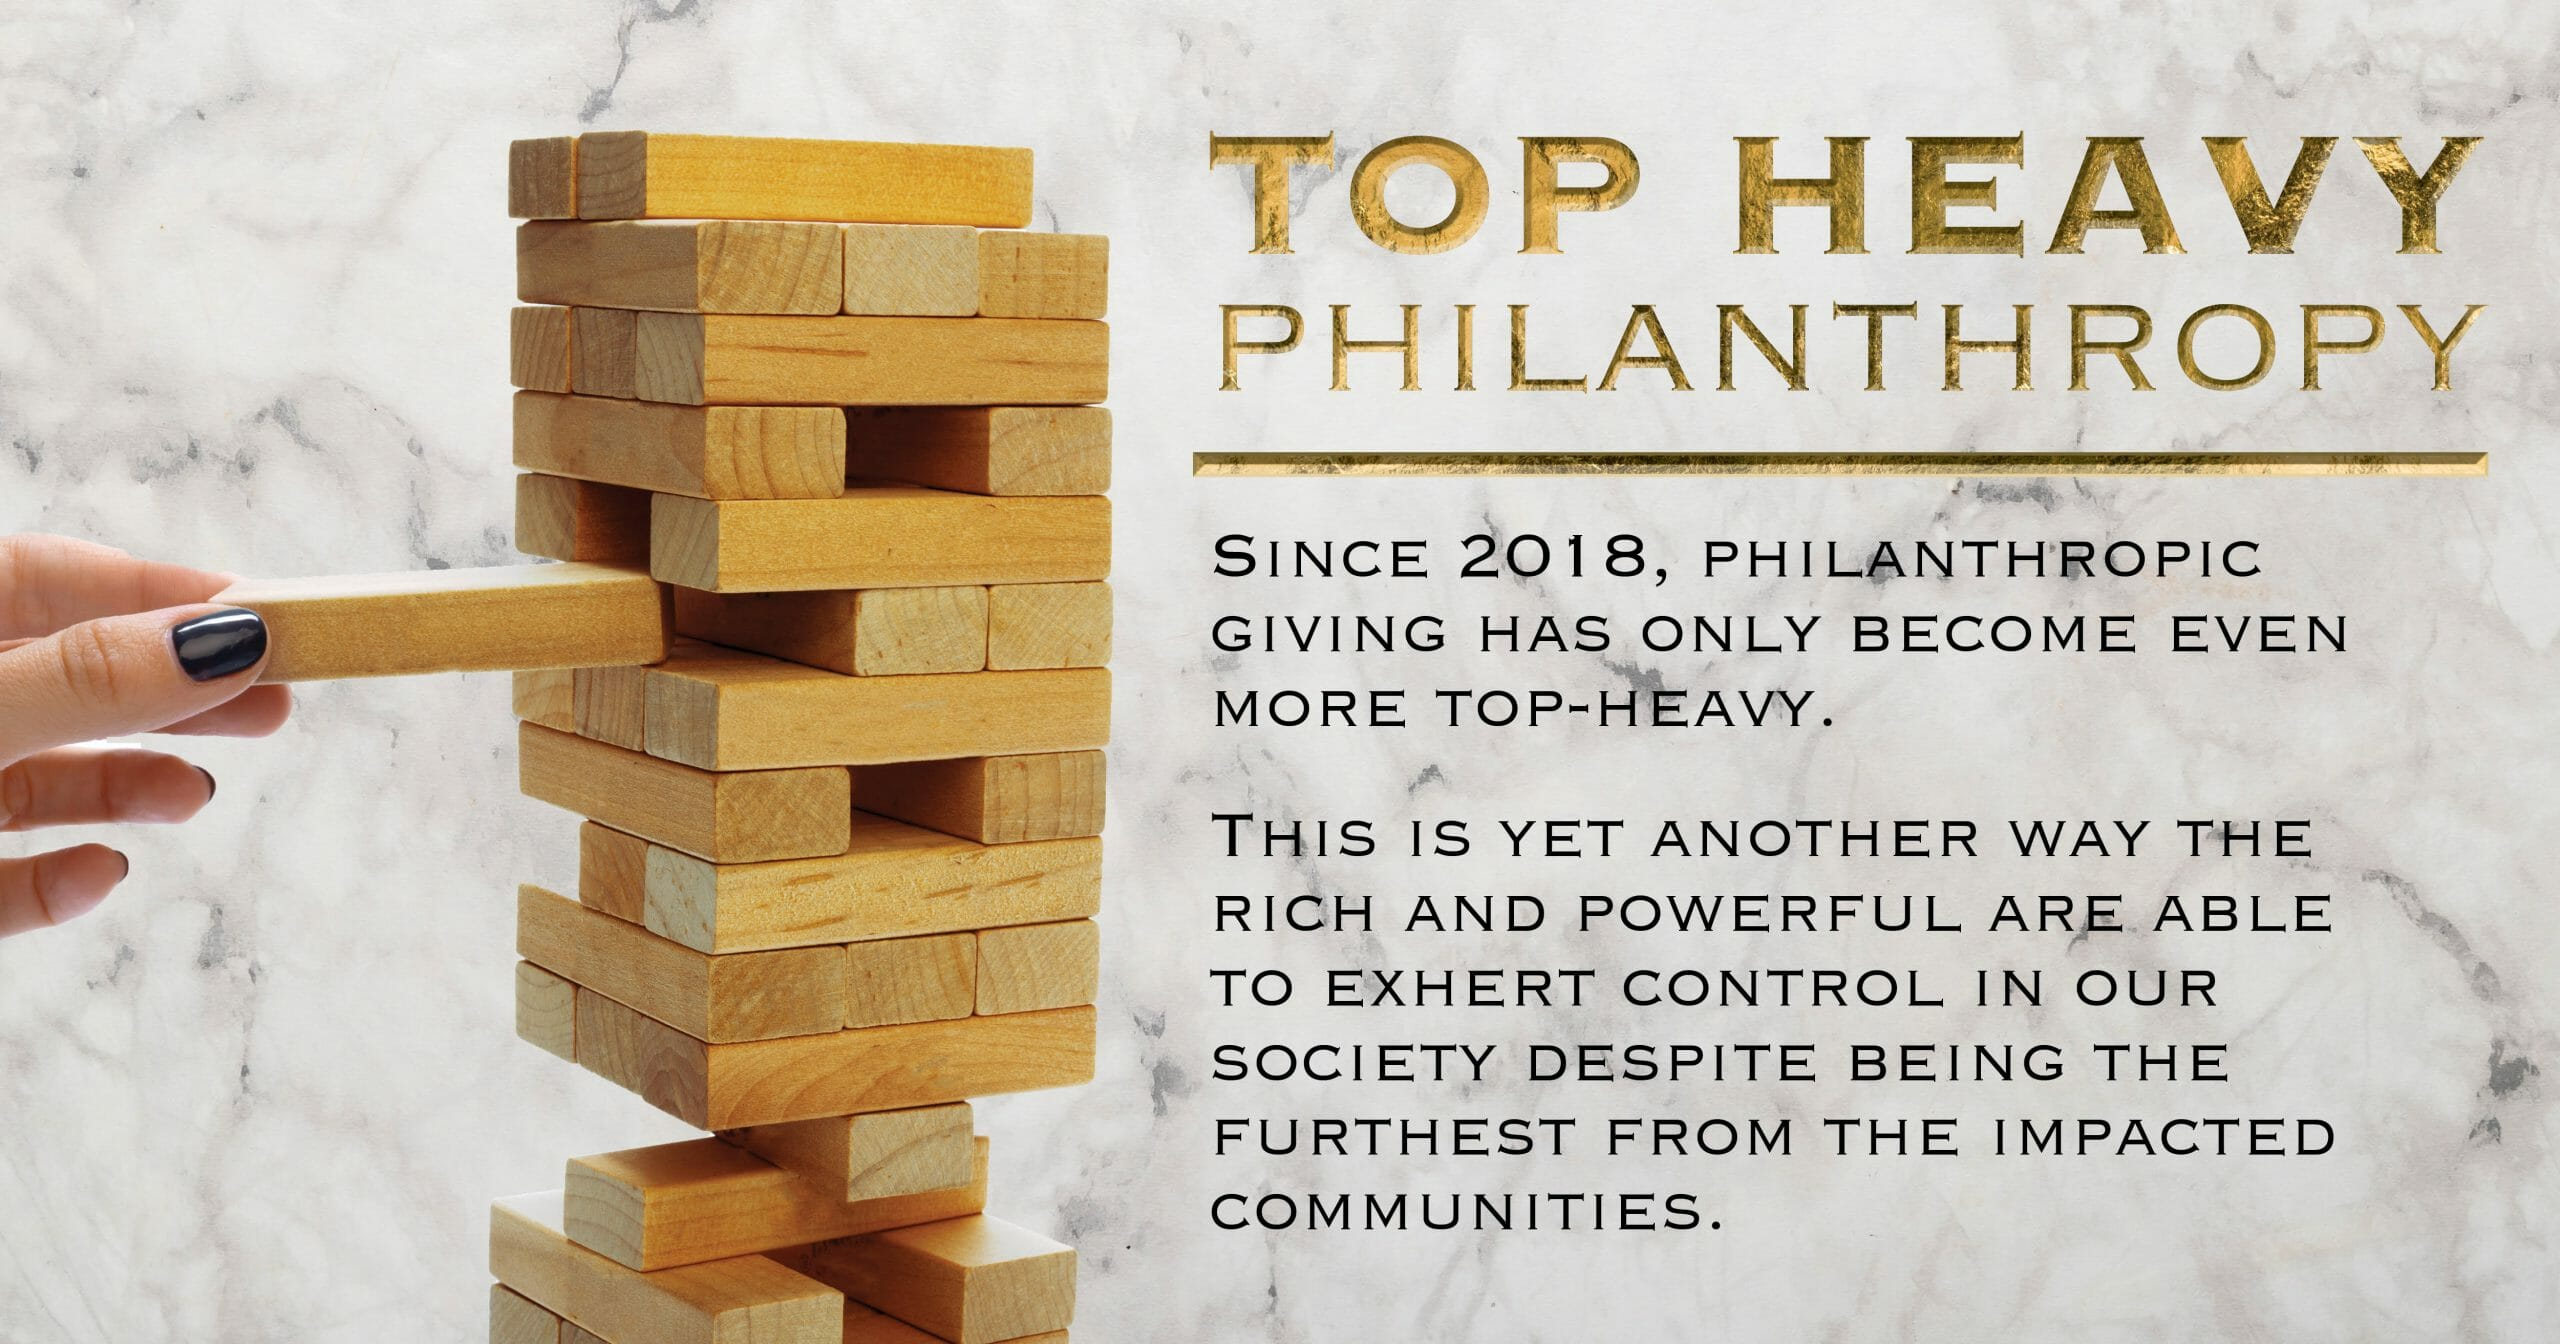 Top heavy philanthropy. Since 2018, philanthropic giving has only become even more top-heavy. This is yet another way the rich and powerful are able to exhert control in our society despite being the furthest from the impacted communities.